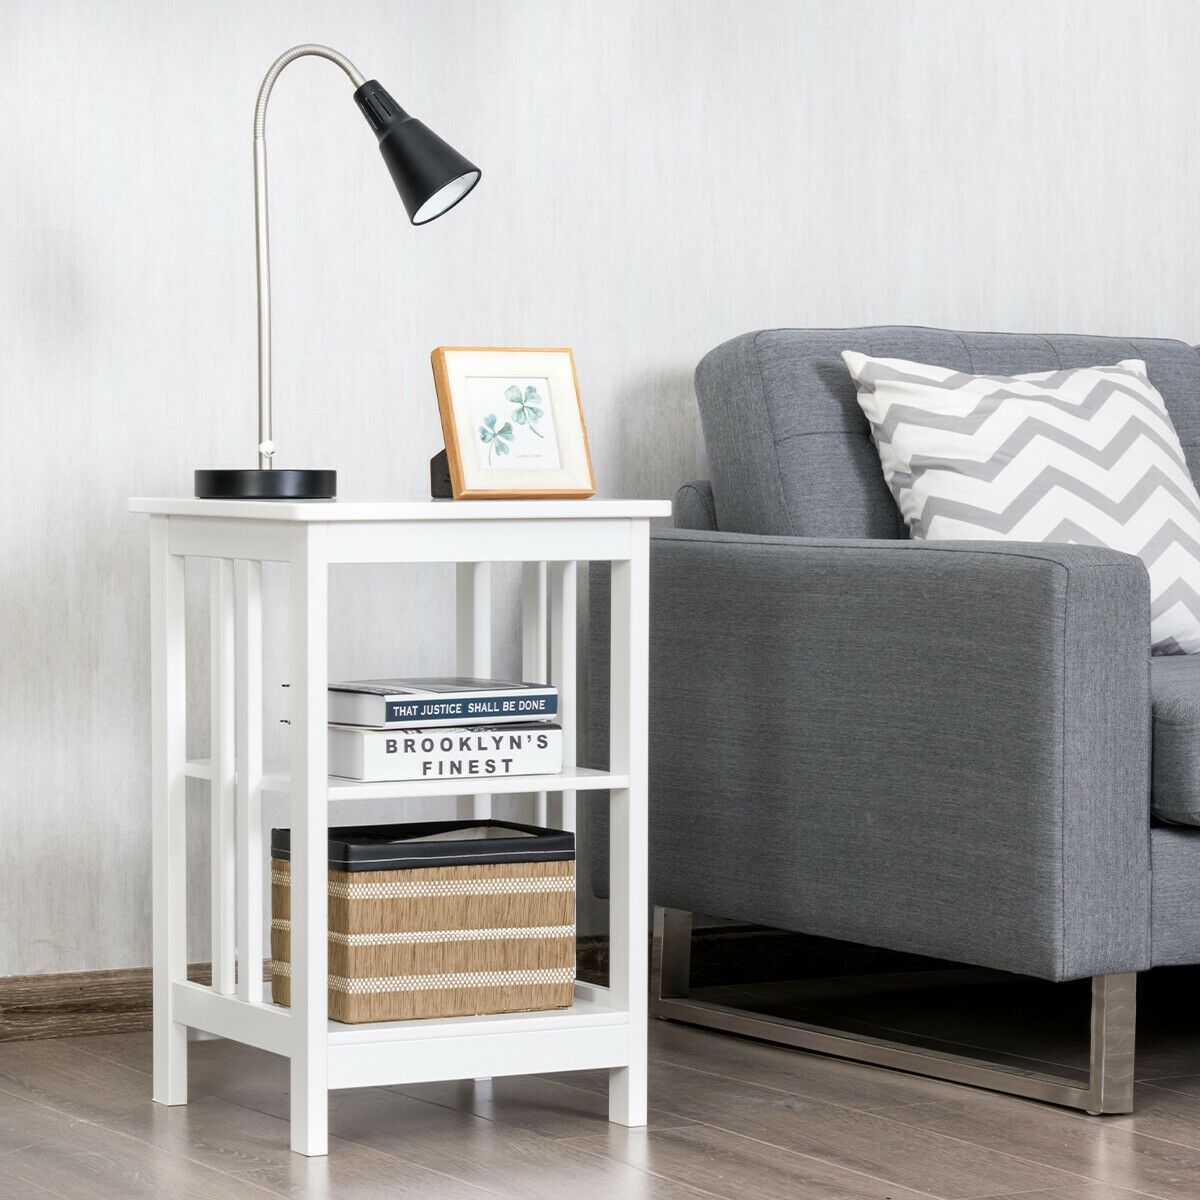 3 Tier Nightstand Side Table With Baffles And Corners White Sofa End Tables End Tables Modern Side Table